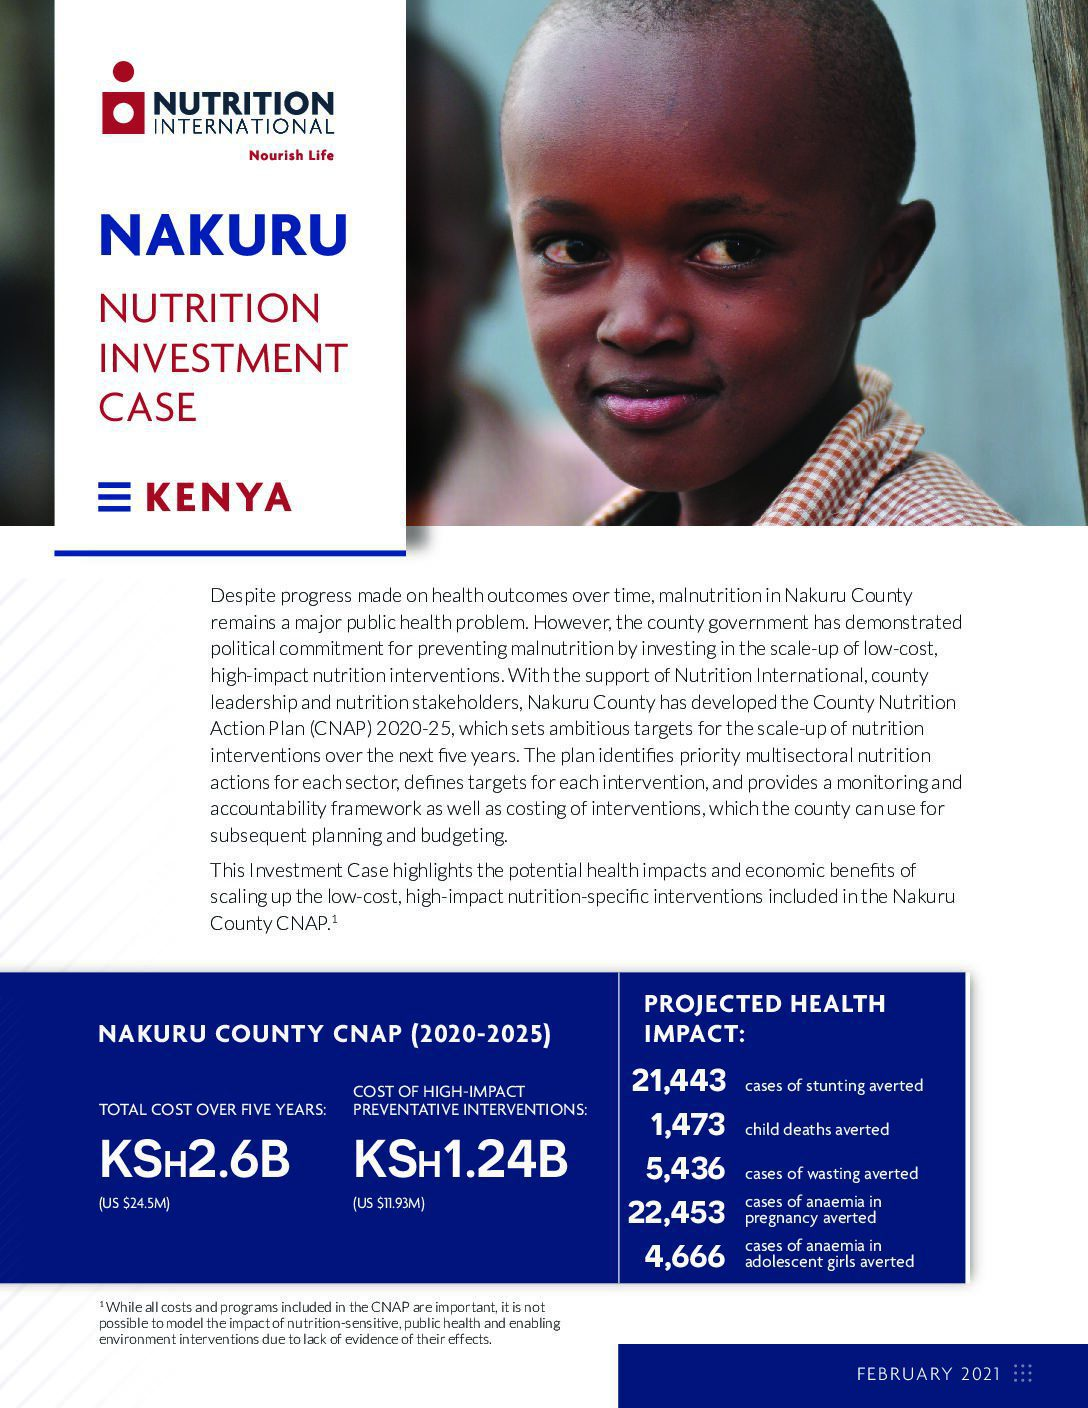 Nakuru County Nutrition Investment Case thumbnail